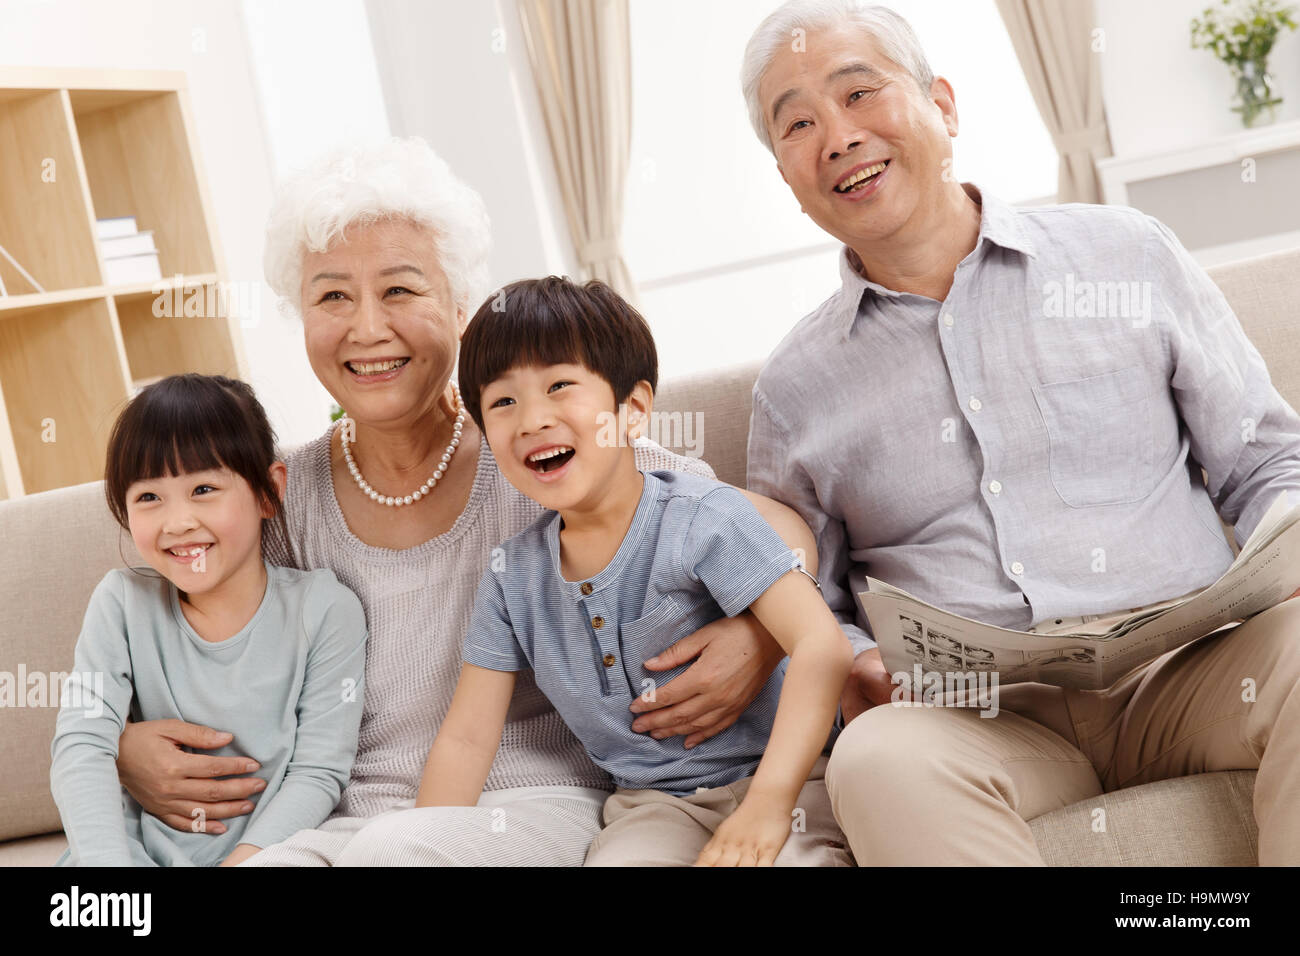 Happy family watching TV in the living room - Stock Image